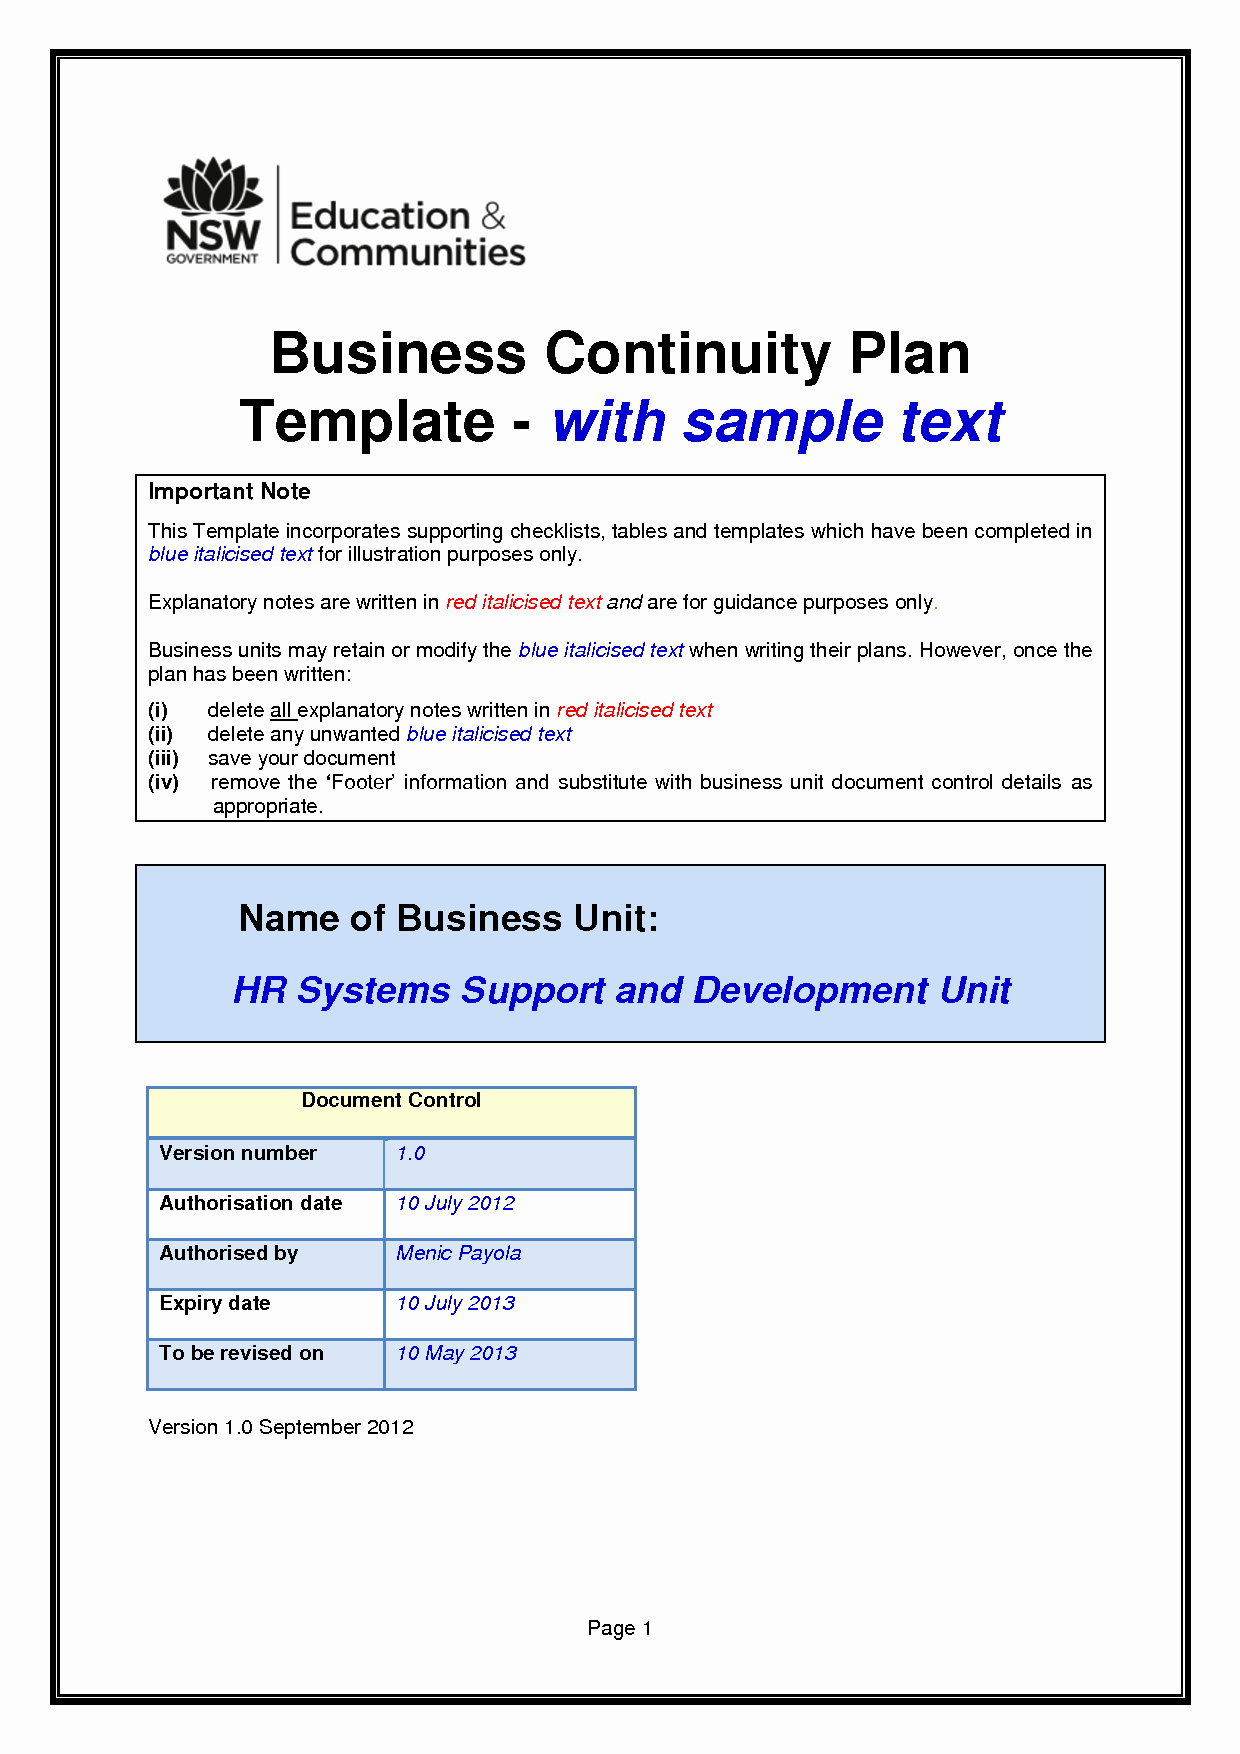 Business Contingency Plan Template New Business Continuity Plan Template